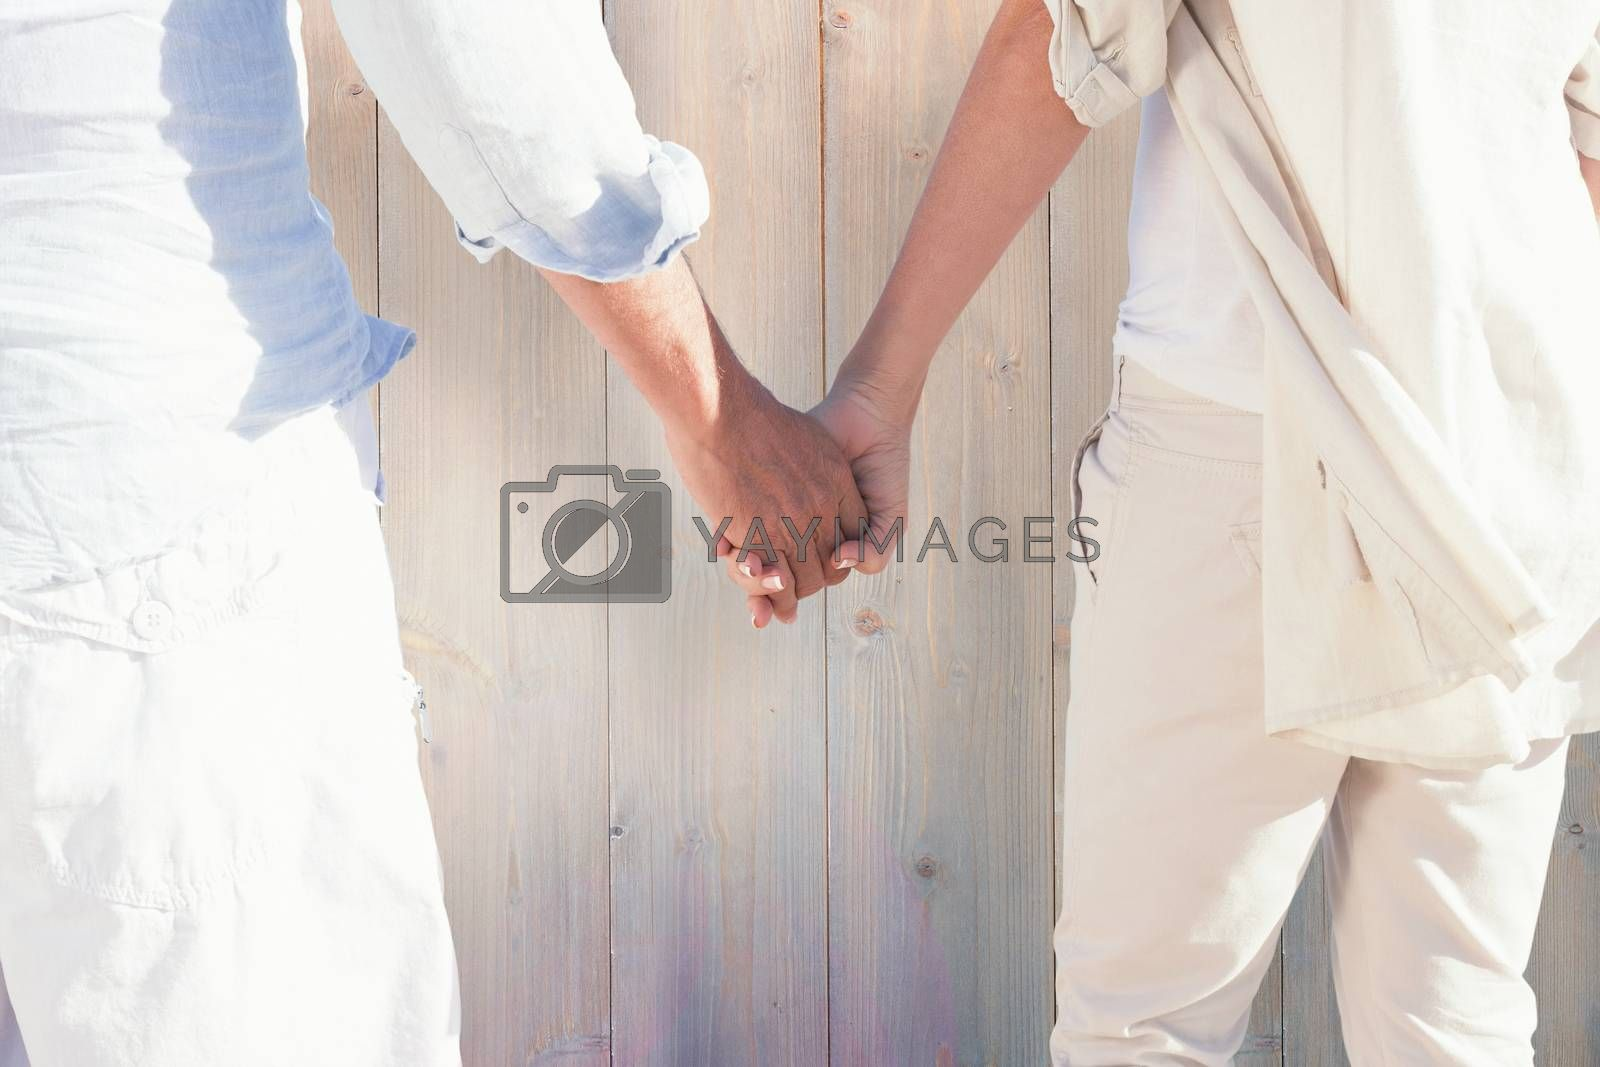 Couple on the beach looking out to sea holding hands against pale grey wooden planks